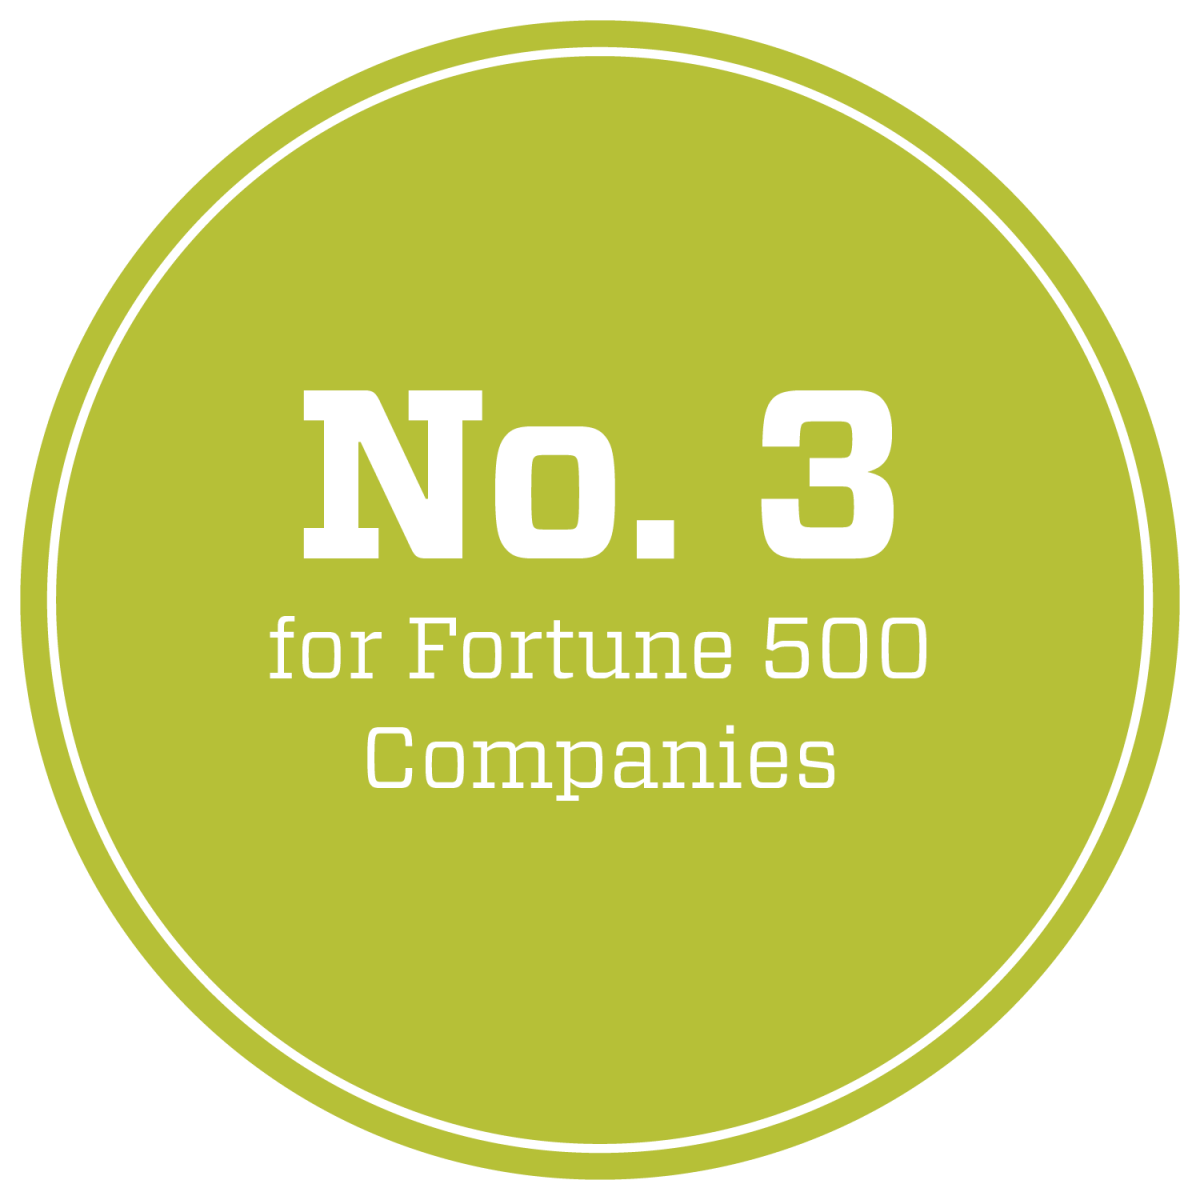 No. 3 for Fortune 500 companies